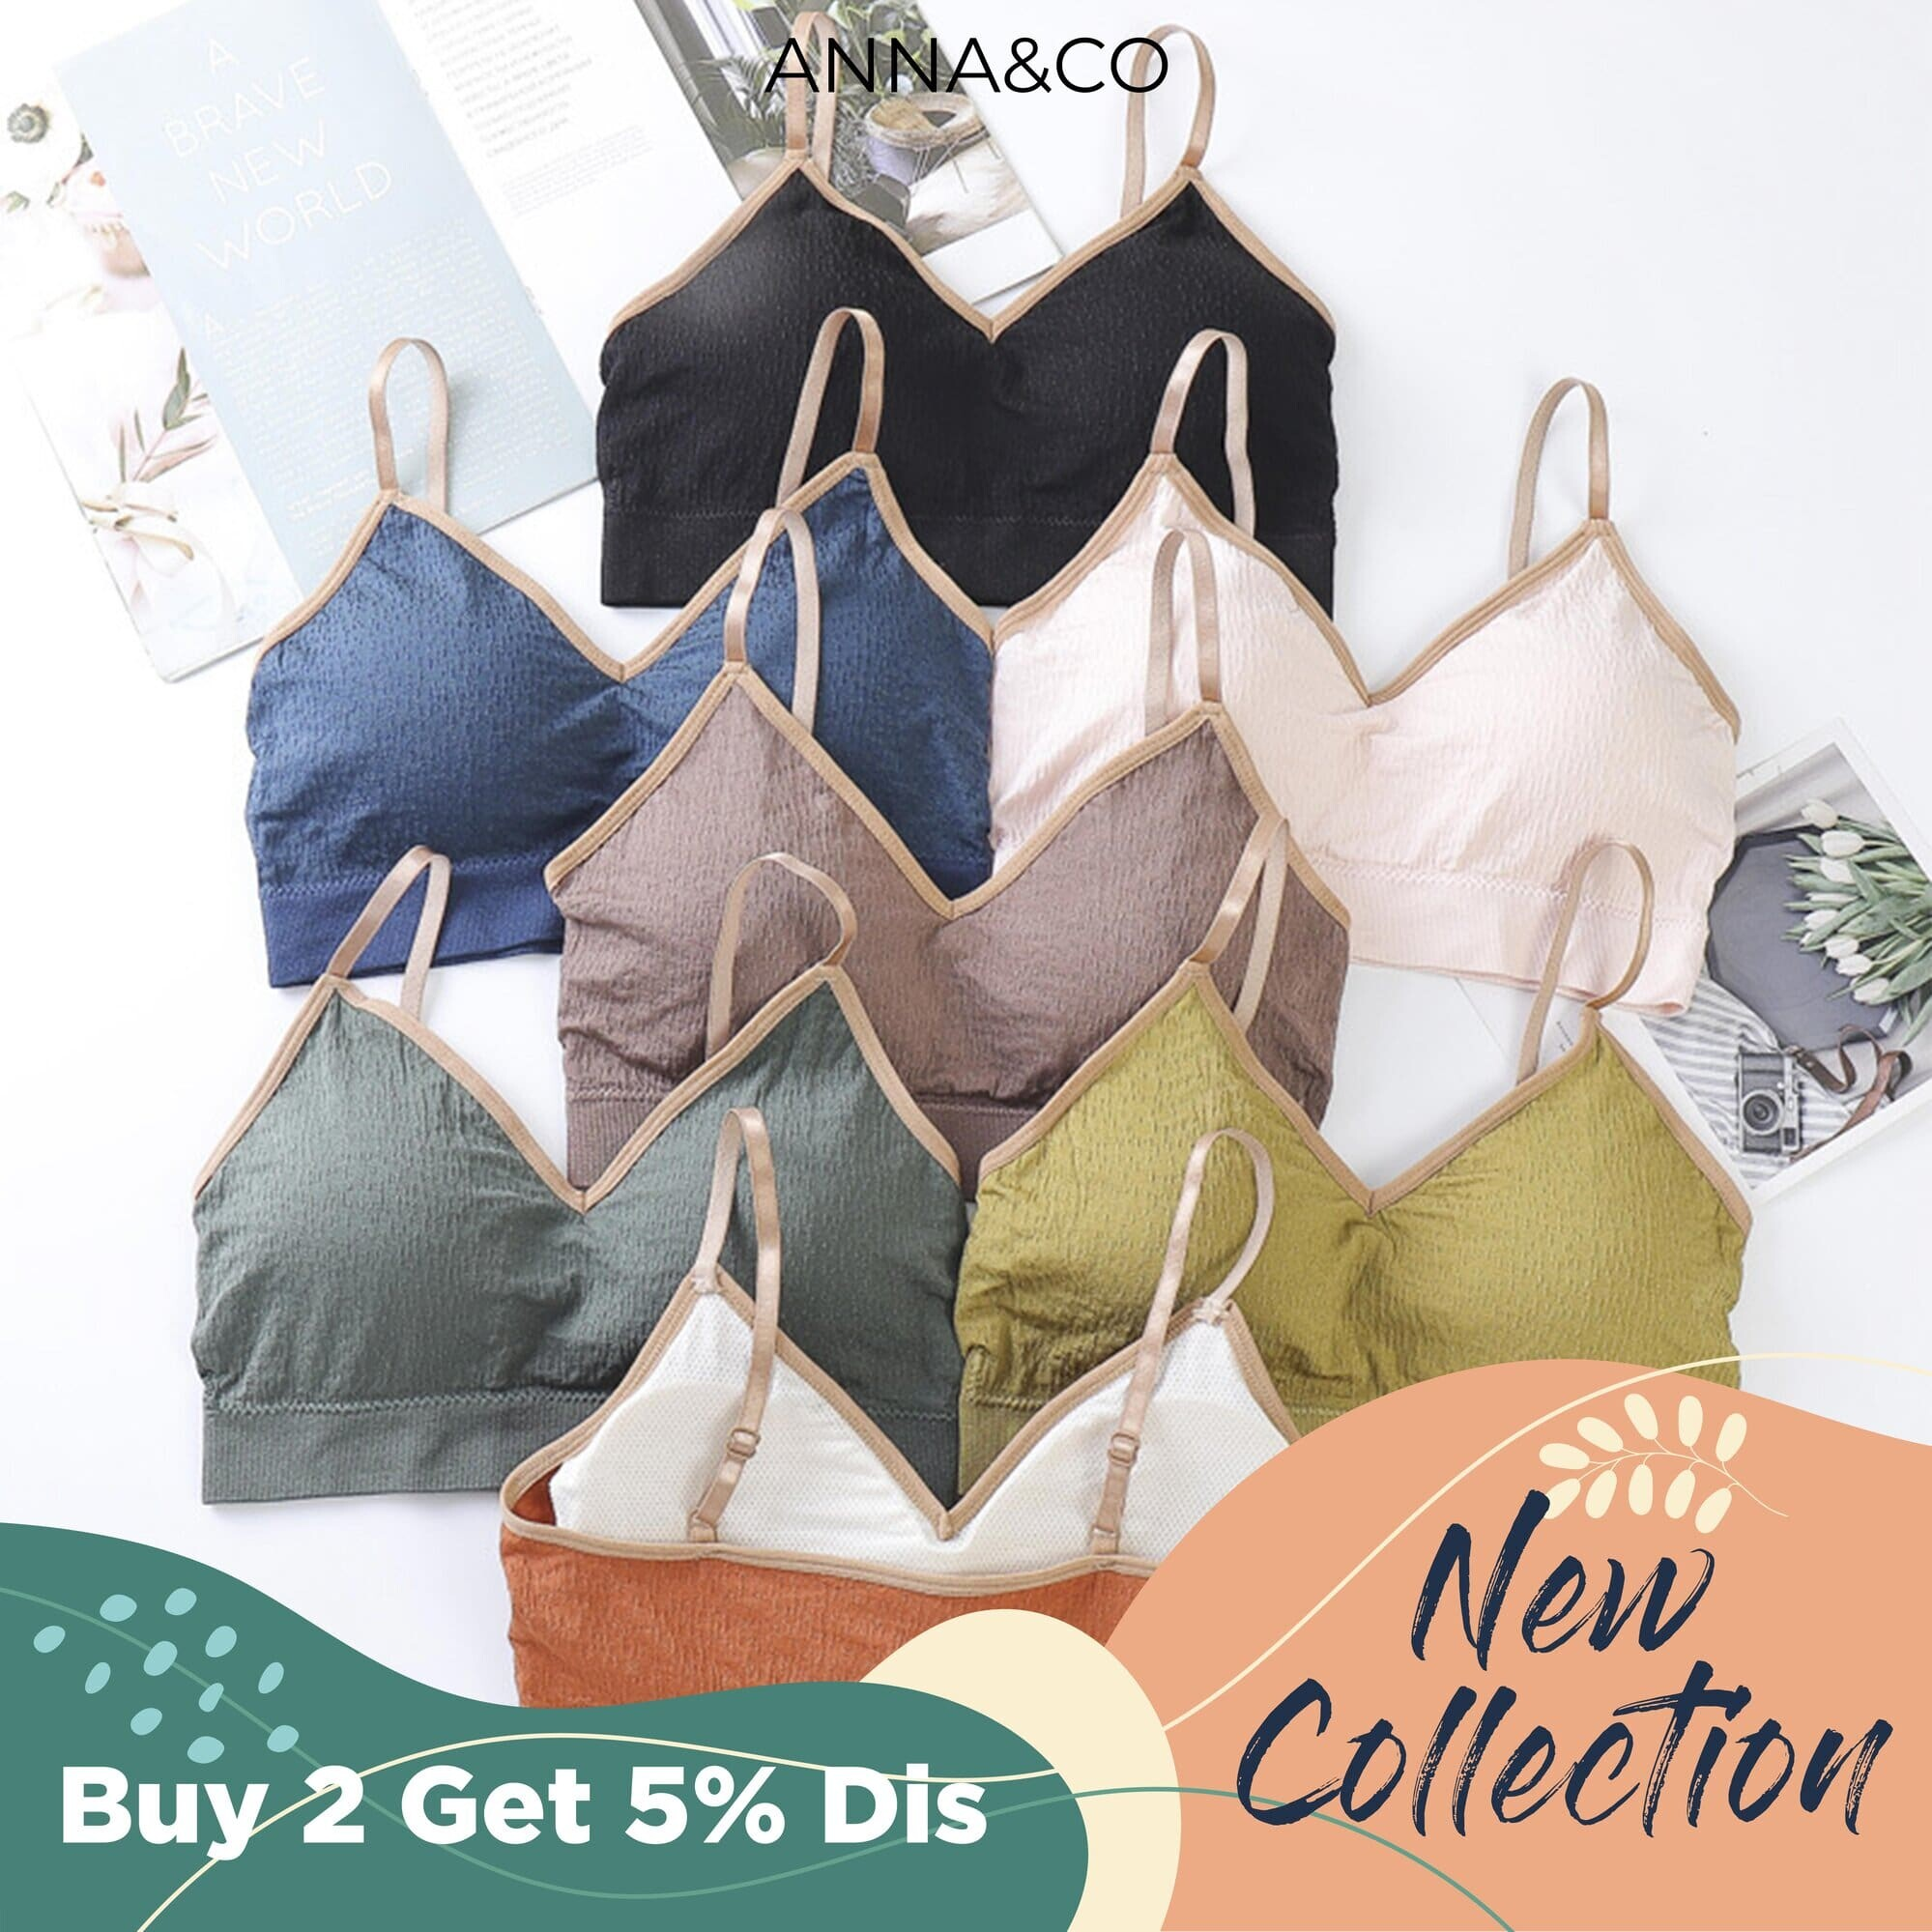 AnnaCo Irene Women Bras Fine Luxury Premium lingerie Stretchable Japan Korean Style Wireless Seamless 3D Push Up Breathable Singlet type Bra with Removable Pads Stretchable Sexy Thin Strip Bra Full Cup One Size Easy Wearing ONE SIZE 727 Irene